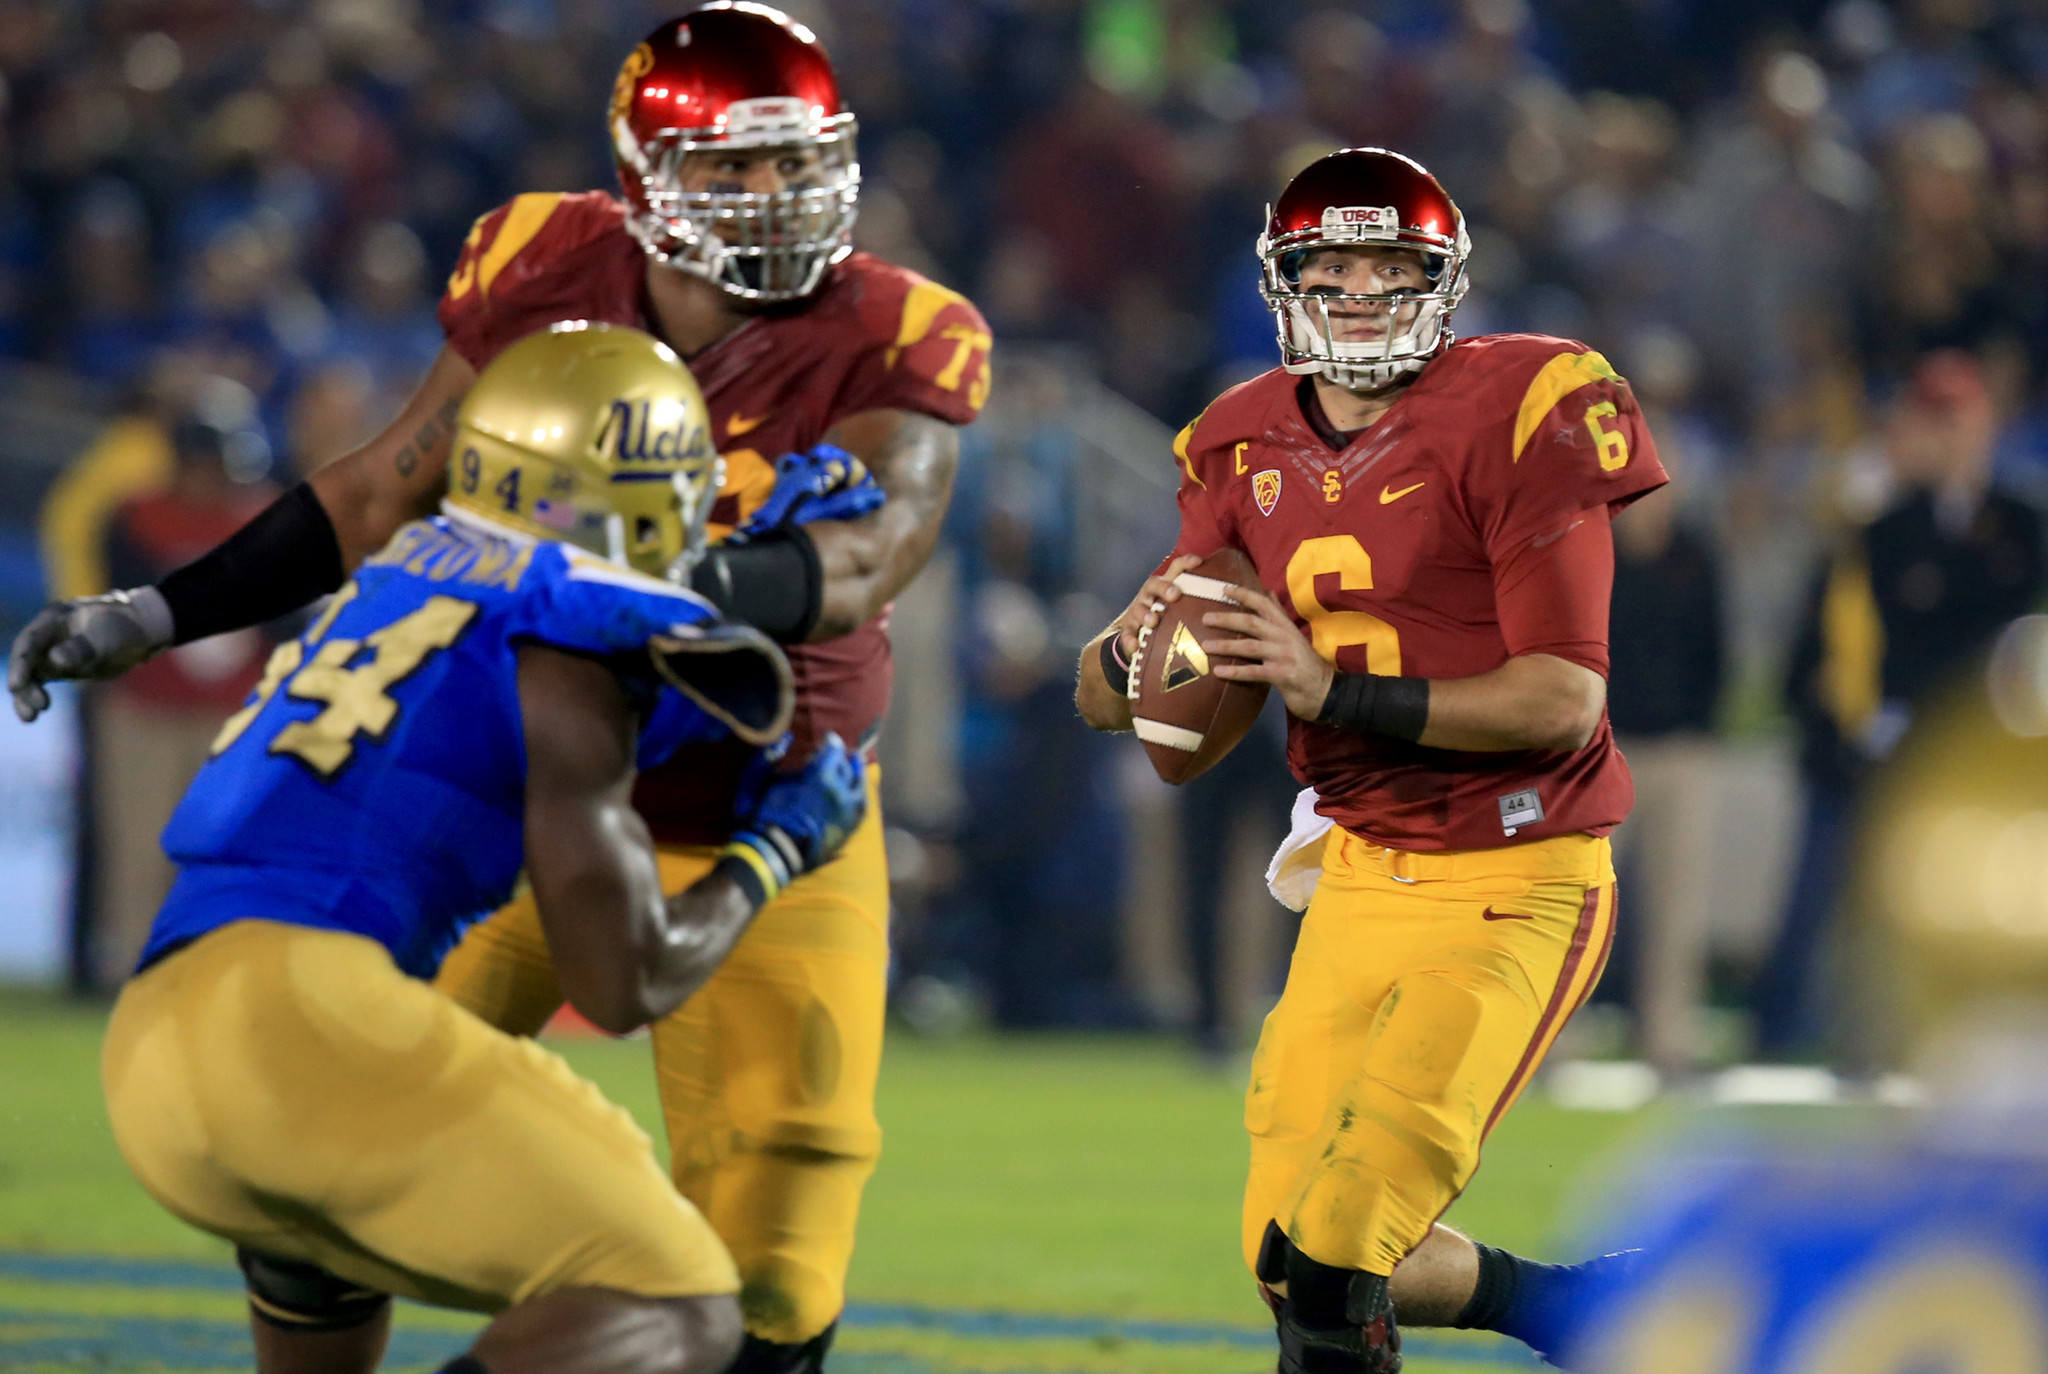 USC quarterback Cody Kessler aiming for first rivalry-game victory